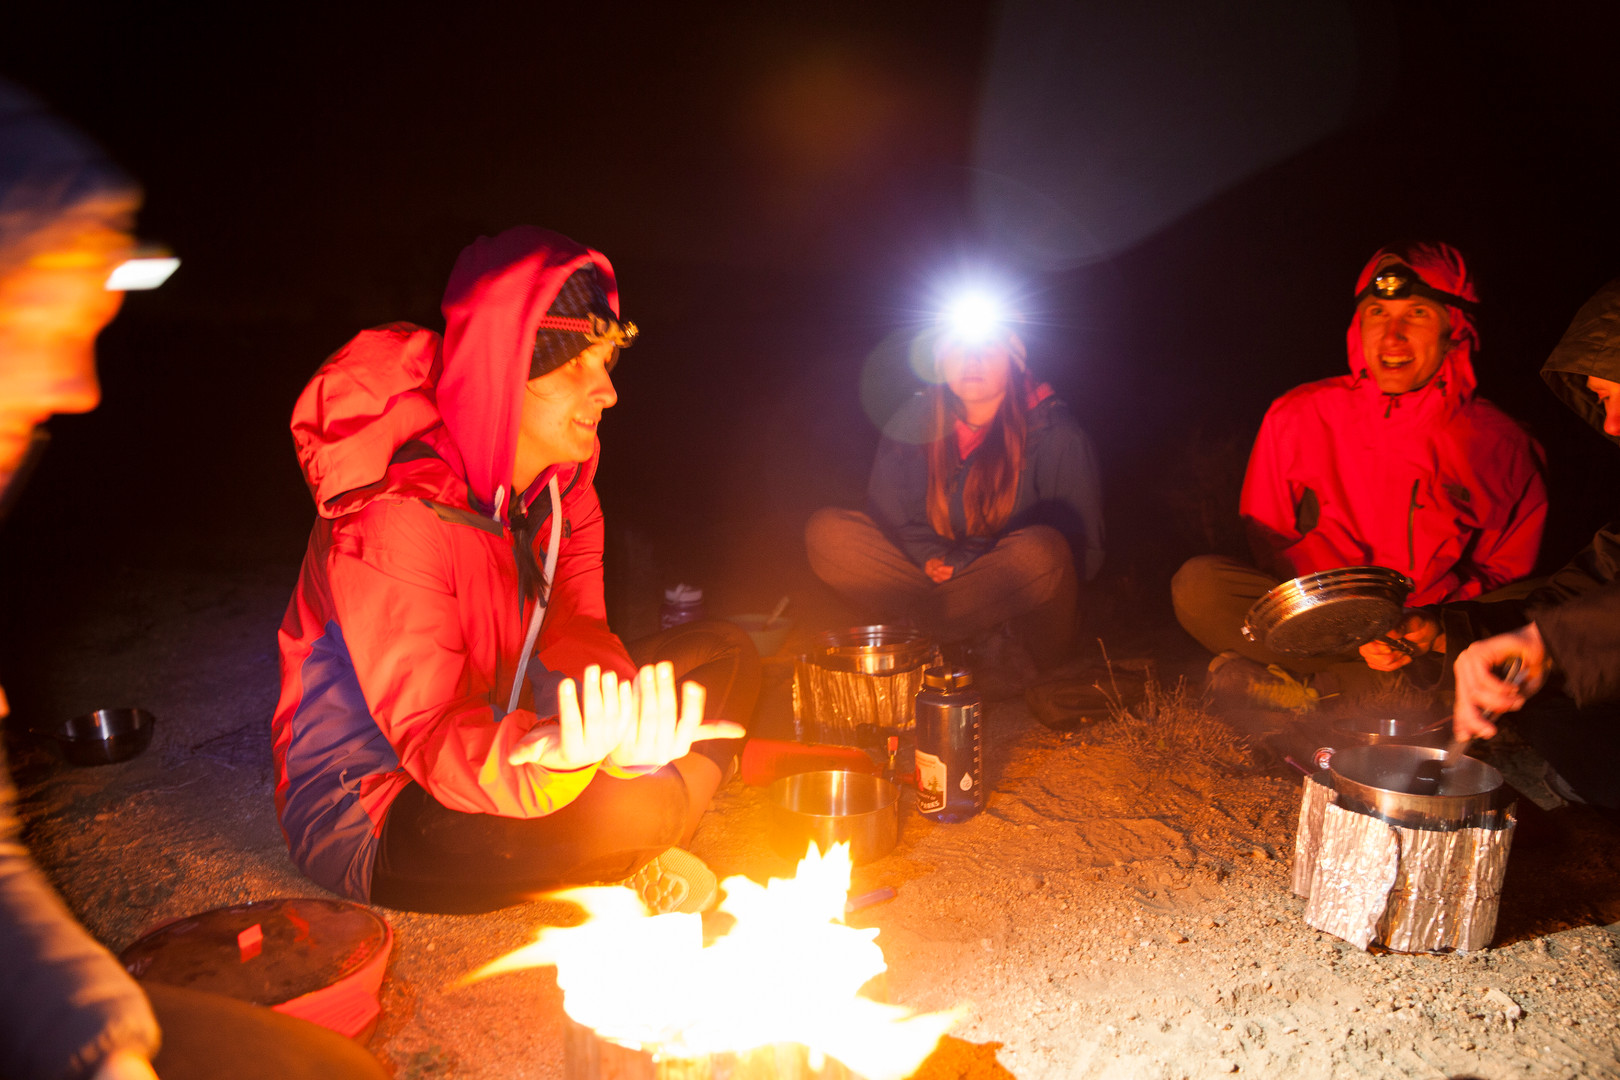 In a cold windy night, Rachel (visible at left) warms-up close by a stove, while Jessie (center with headlight on) and Rama (smiling at right) hang out with other elements of the group. During the Spring Break of the 2016 Spring Semester, a group of eight SUU backpackers traveled to Southern California to hike during 5 days, along the 37.3 miles of the California Riding and Hiking Trail in the desert of the Joshua Tree National Park. (photo-series 02/03) © March 2016